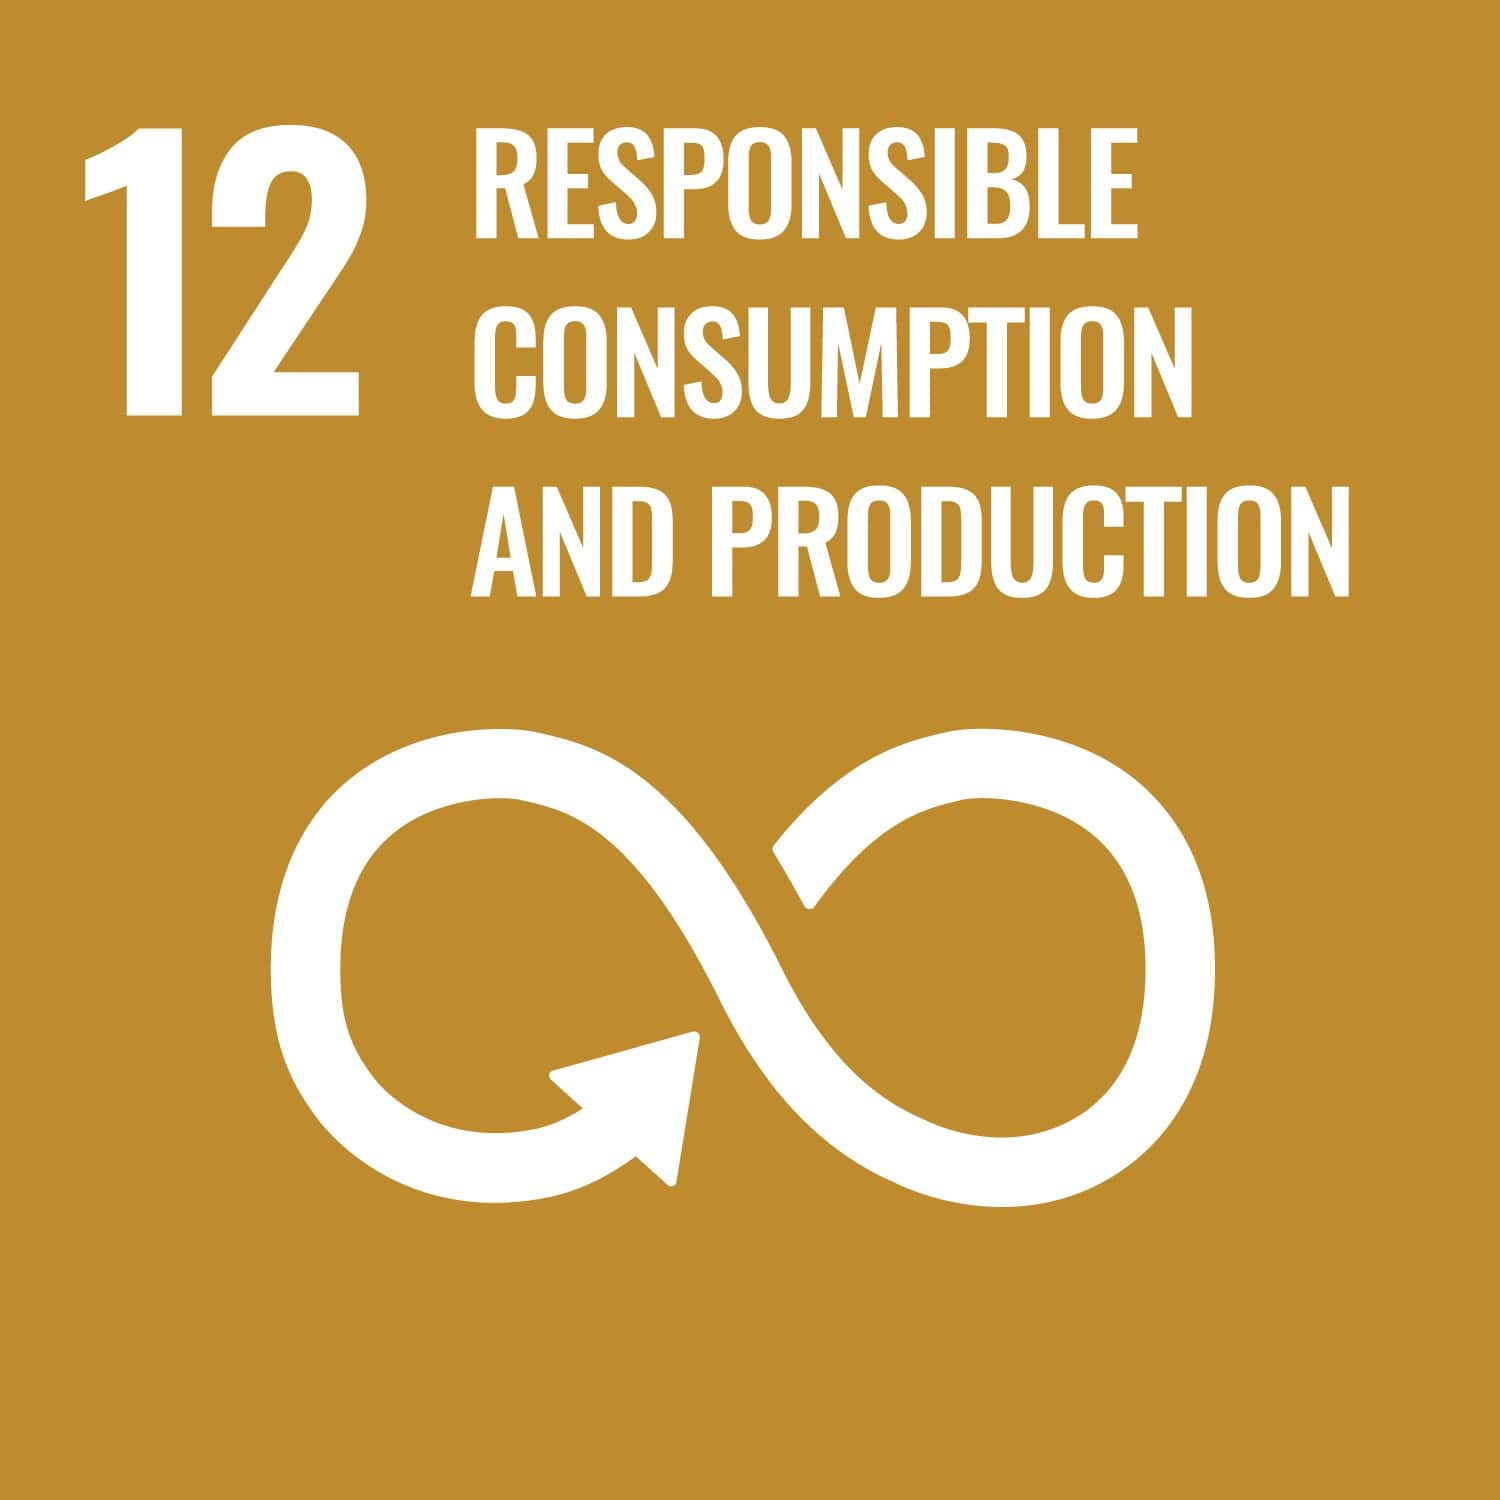 UN logo for responsible consumption and production